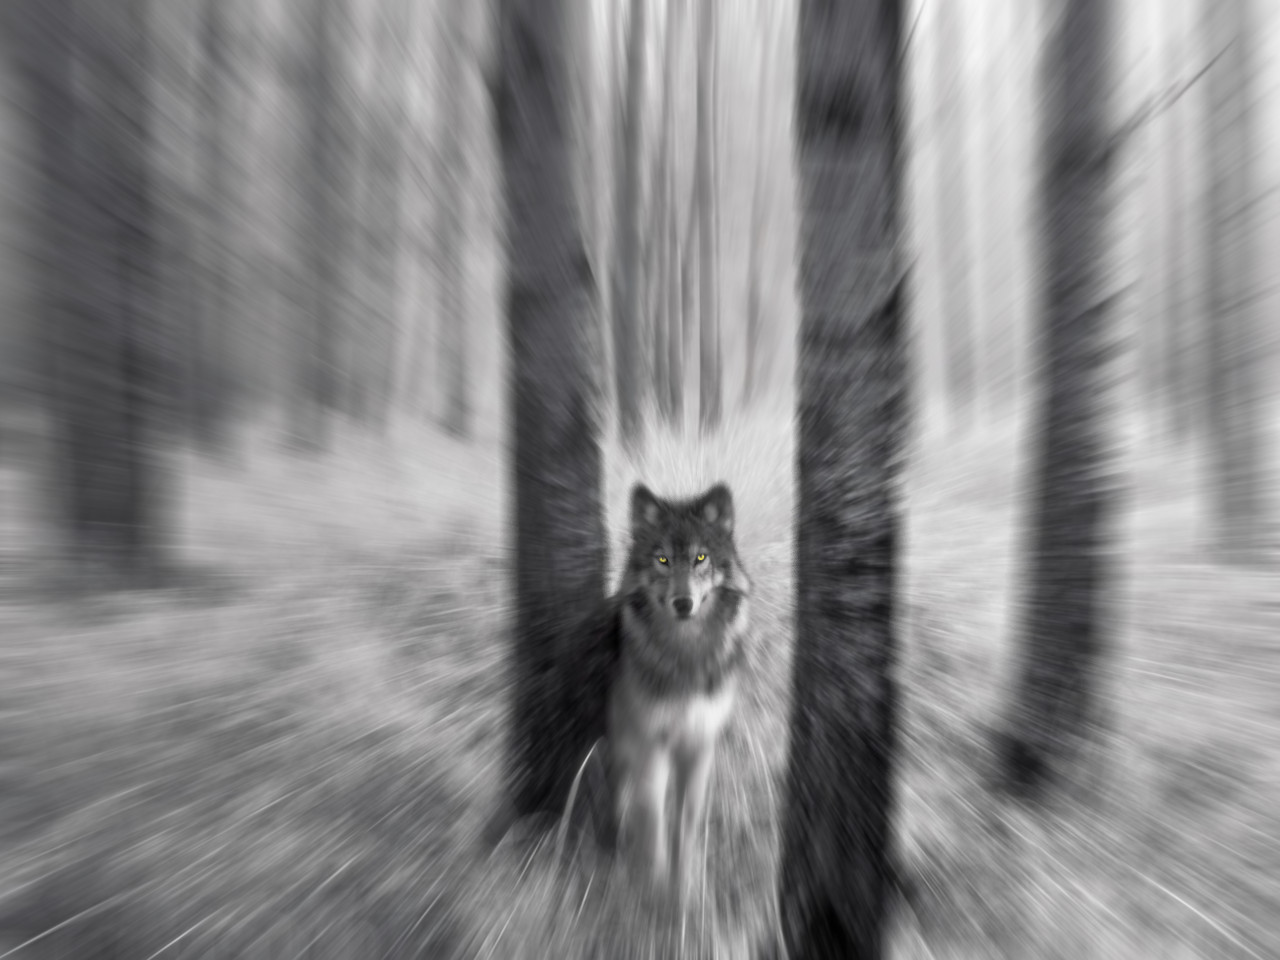 Iphone wallpaper tumblr wolf - Related Pictures Backgrounds Trippy Backgrounds Tumblr Desktop